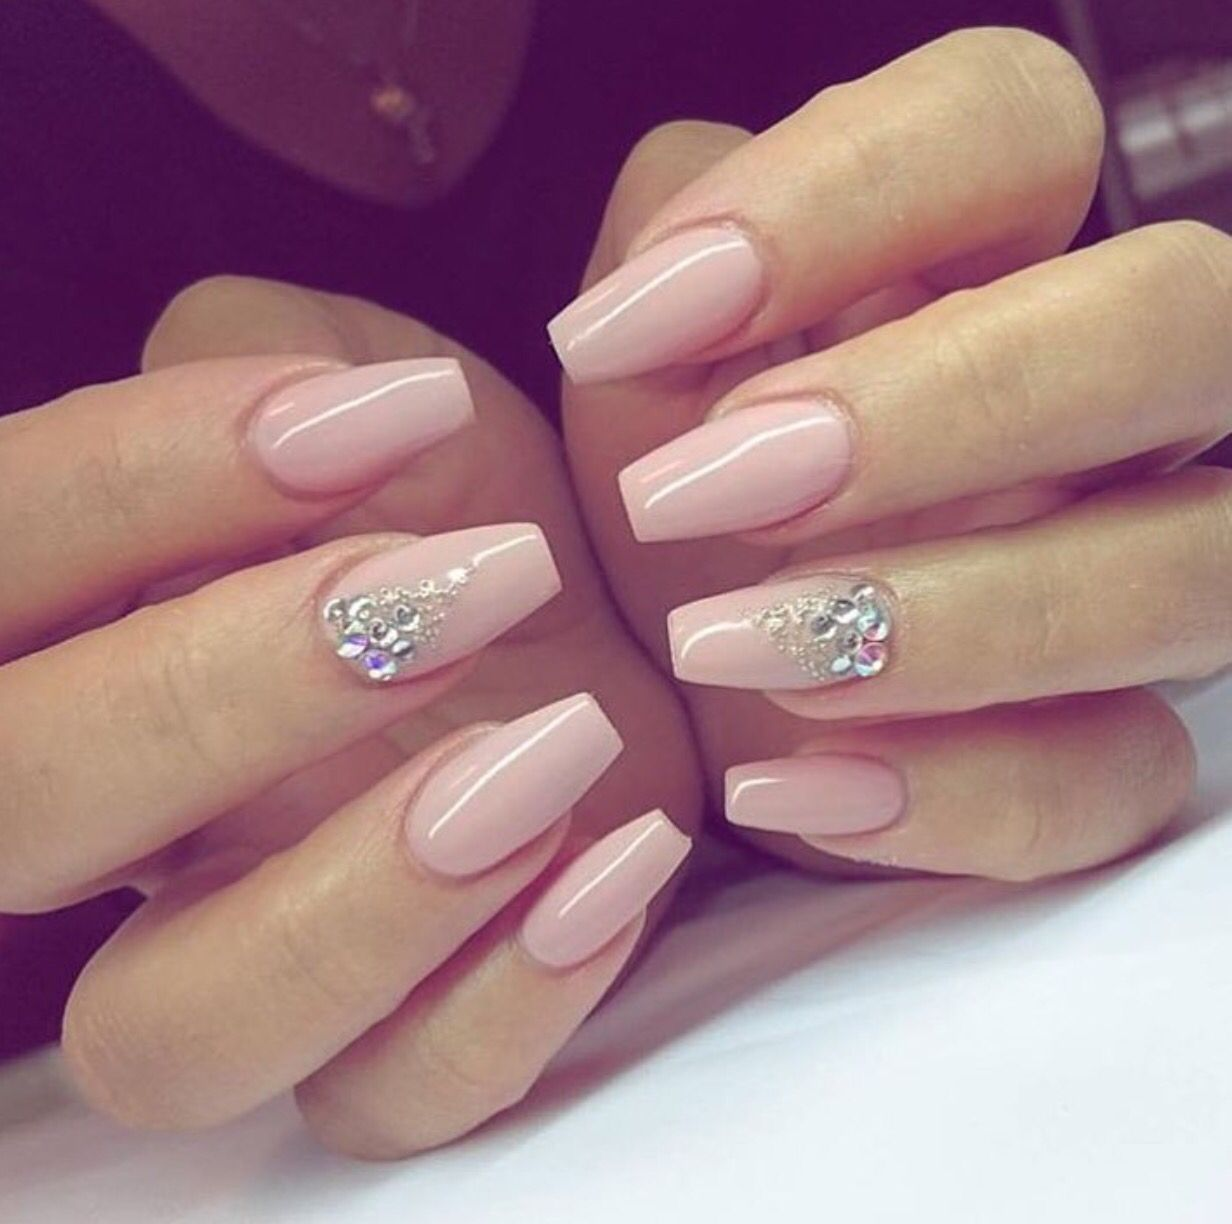 Almond with Gems - Nail Art Gallery